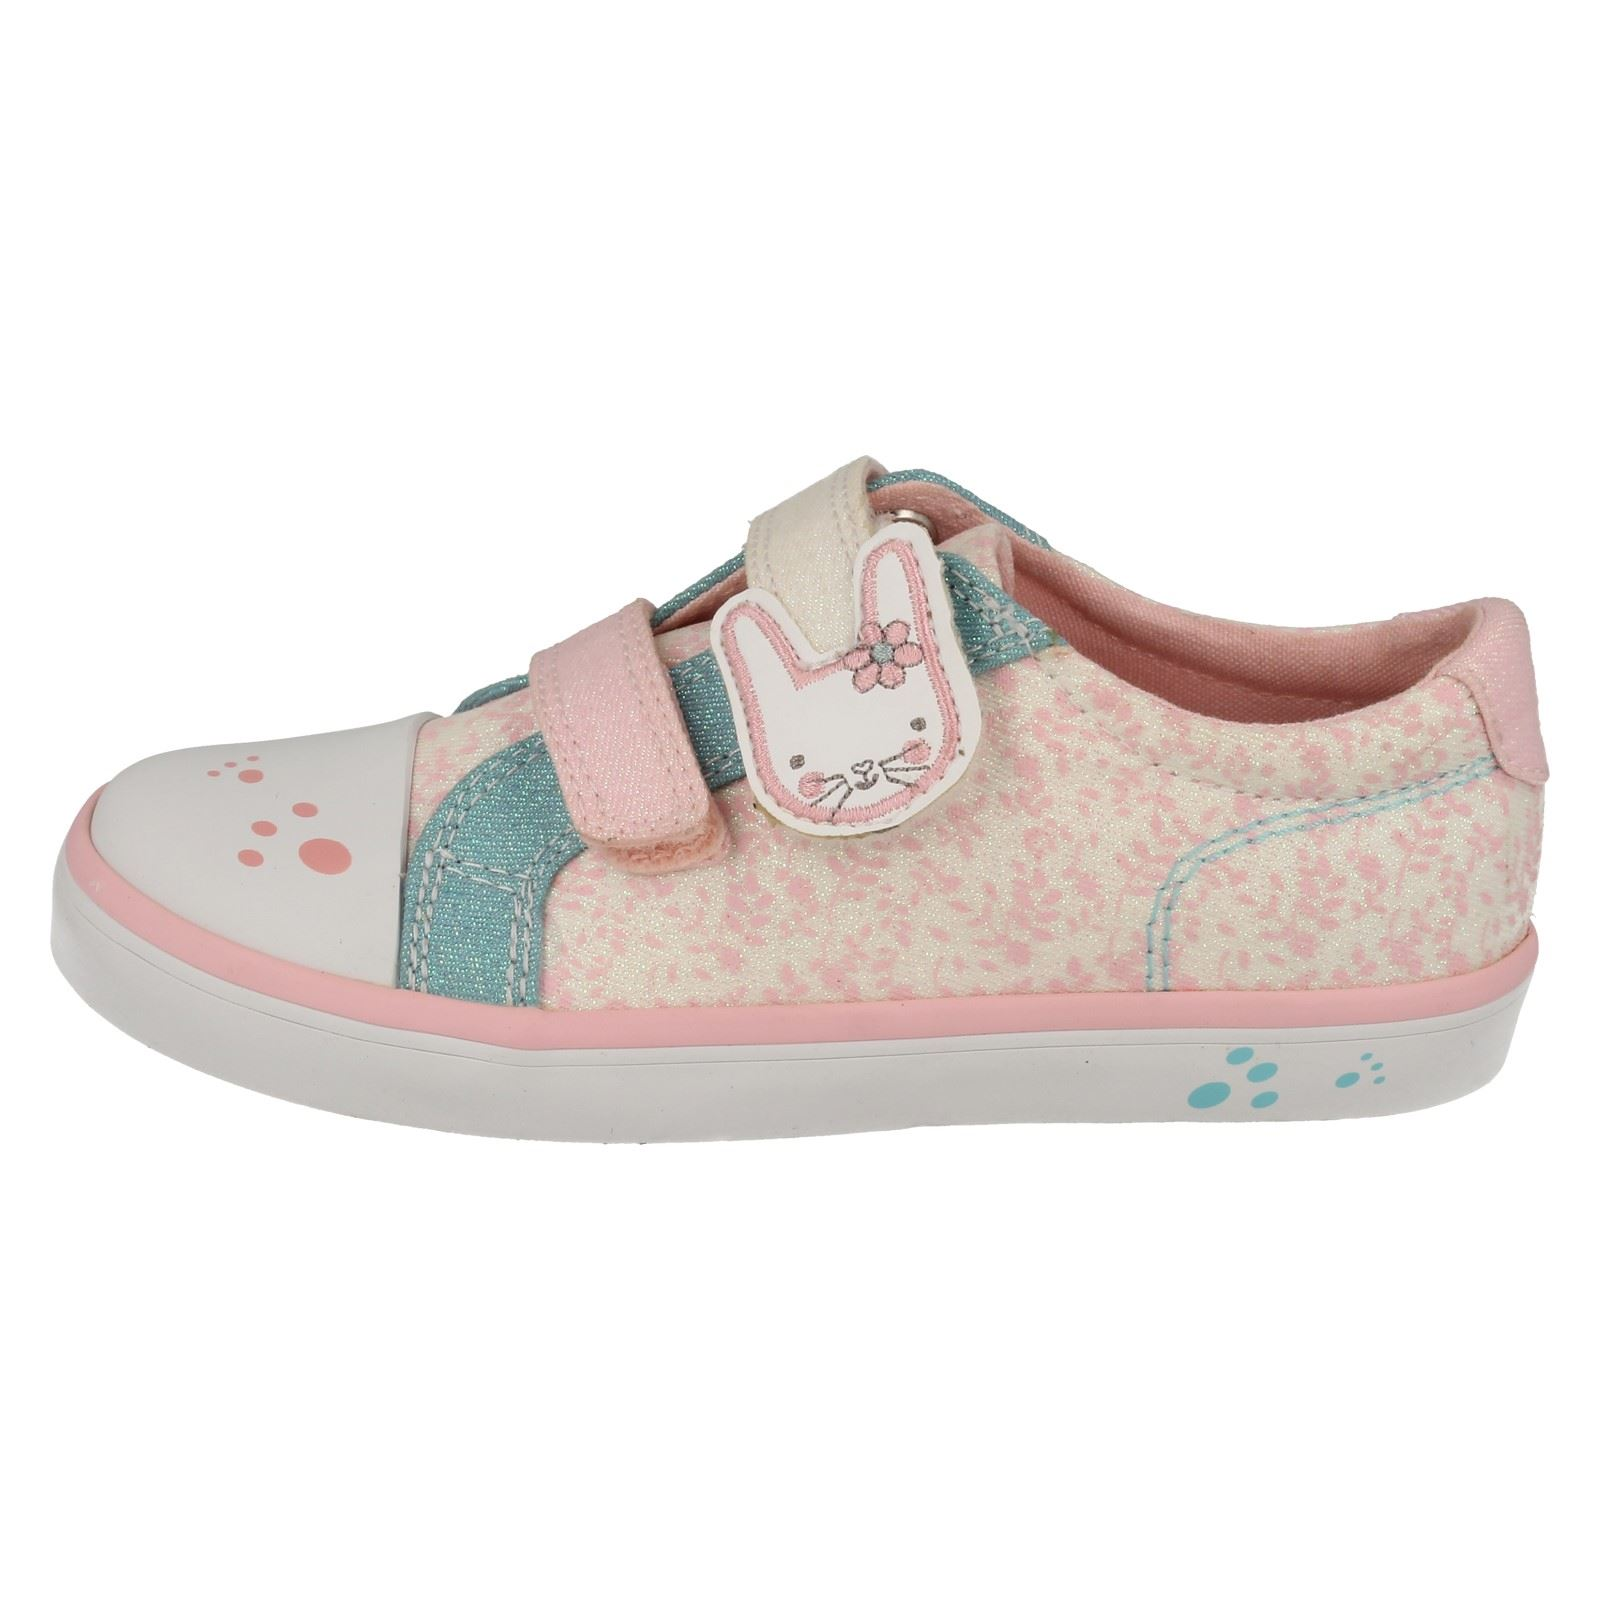 Girls Clarks Casual Canvas Shoes Gracie Bea